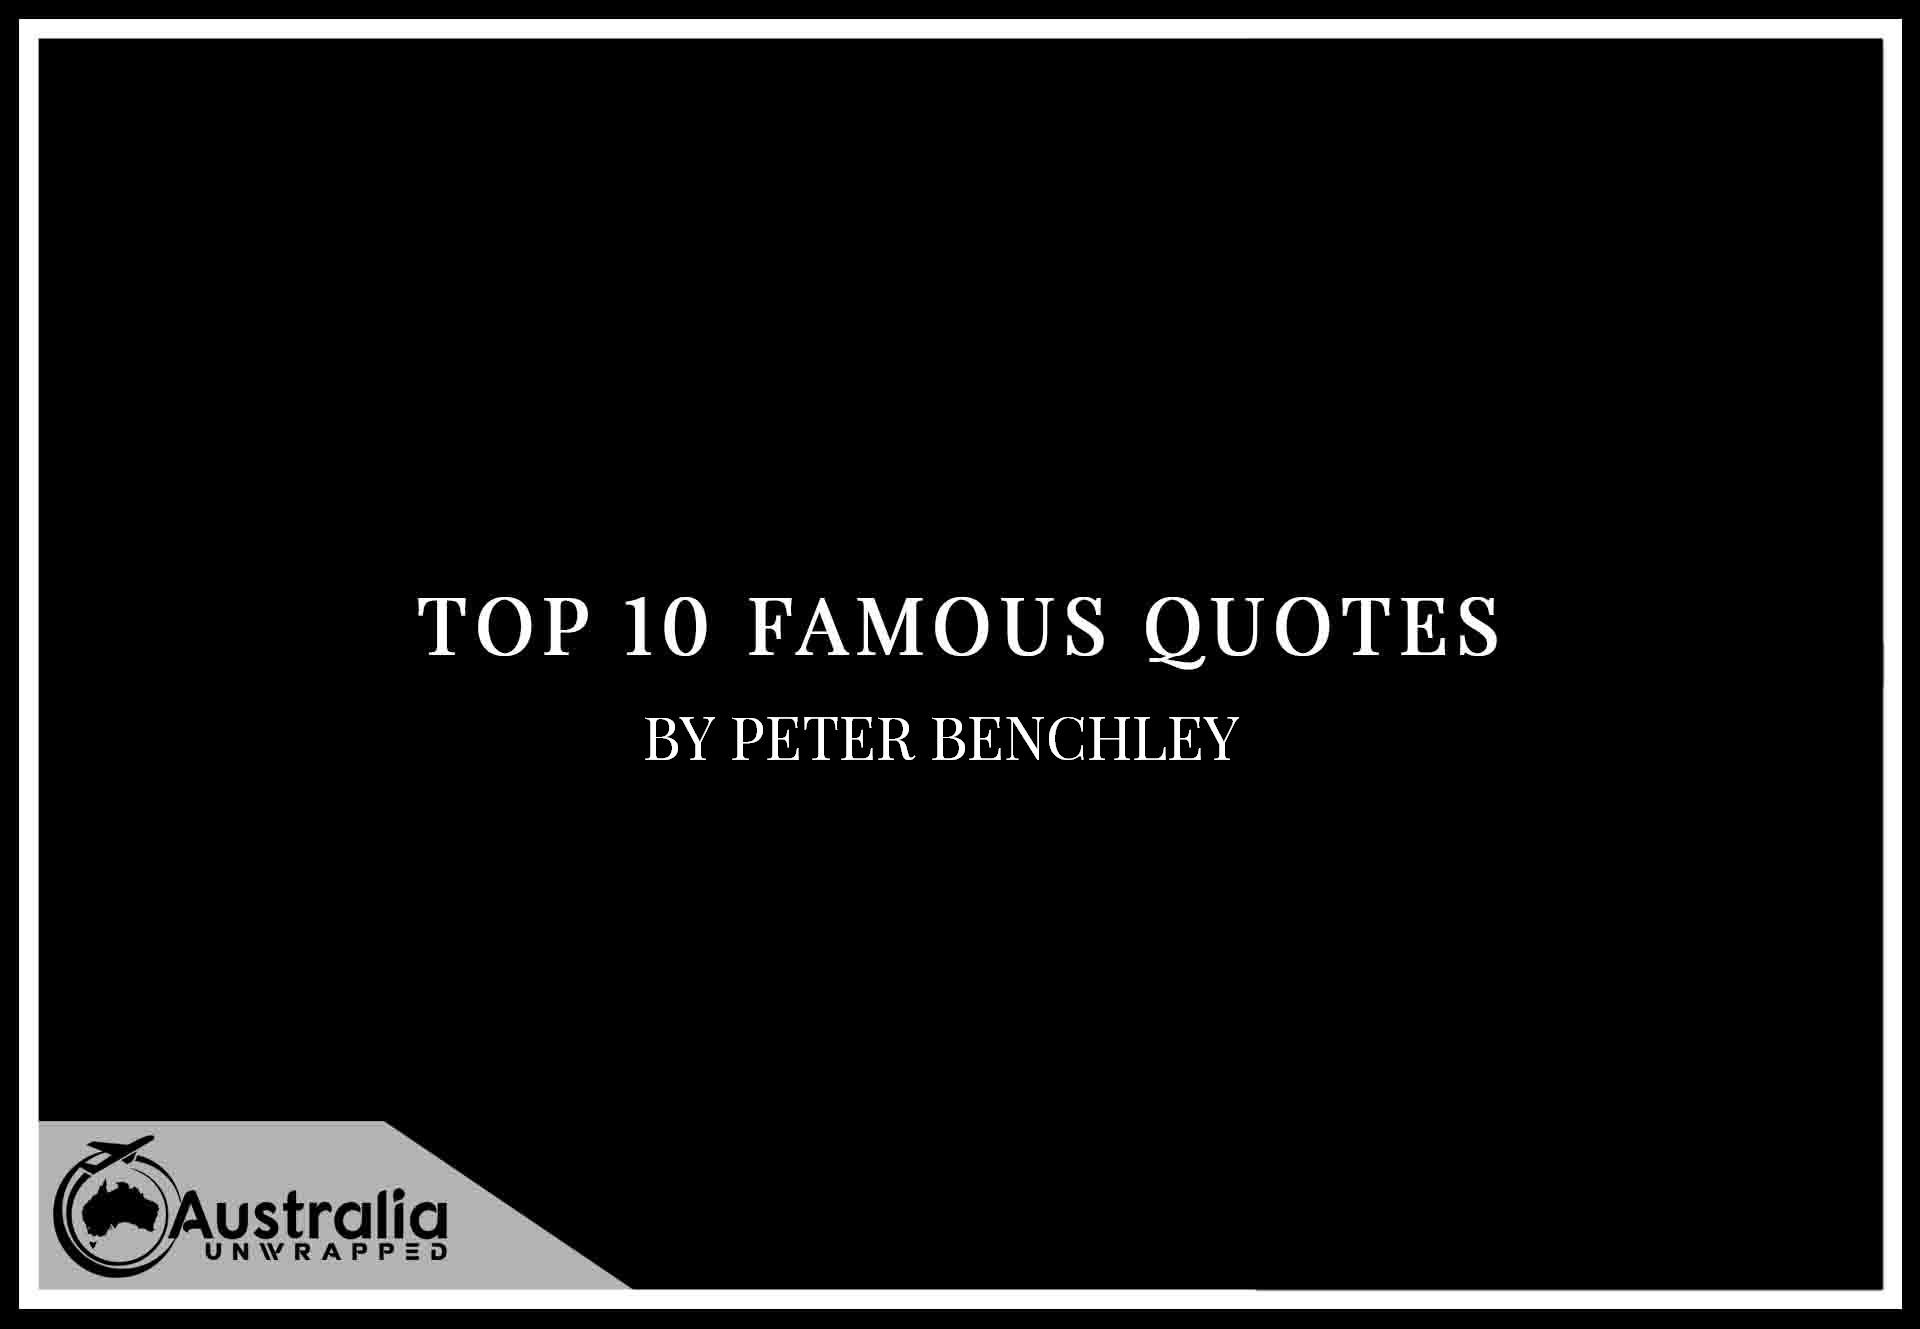 Top 10 Famous Quotes by Author Peter Benchley